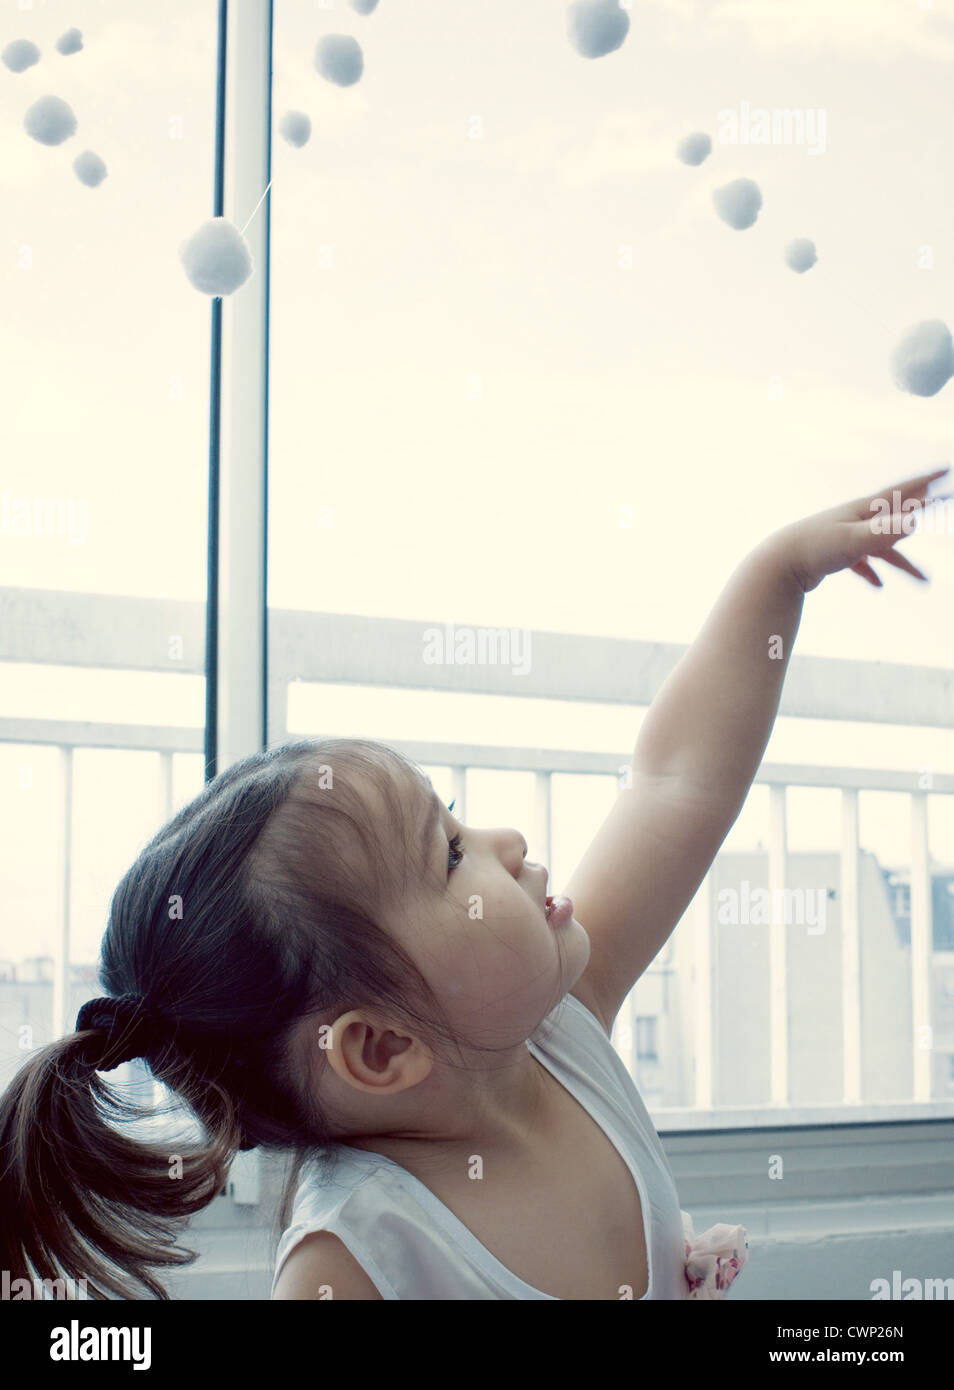 Little girl looking up at pompom garland - Stock Image